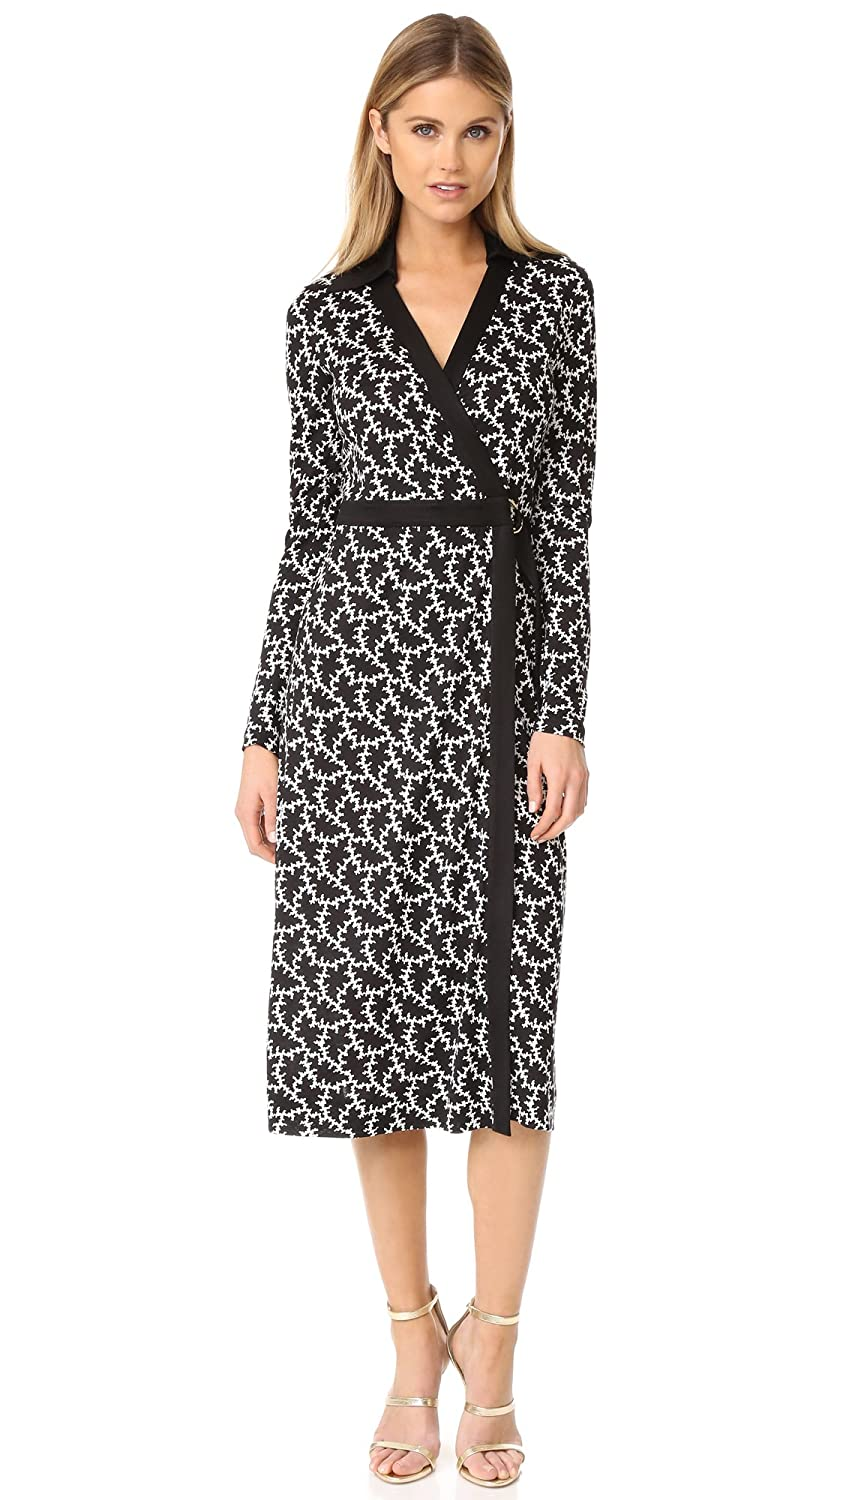 Amazon.com: Diane von Furstenberg Women\'s Printed D Ring Wrap Dress ...